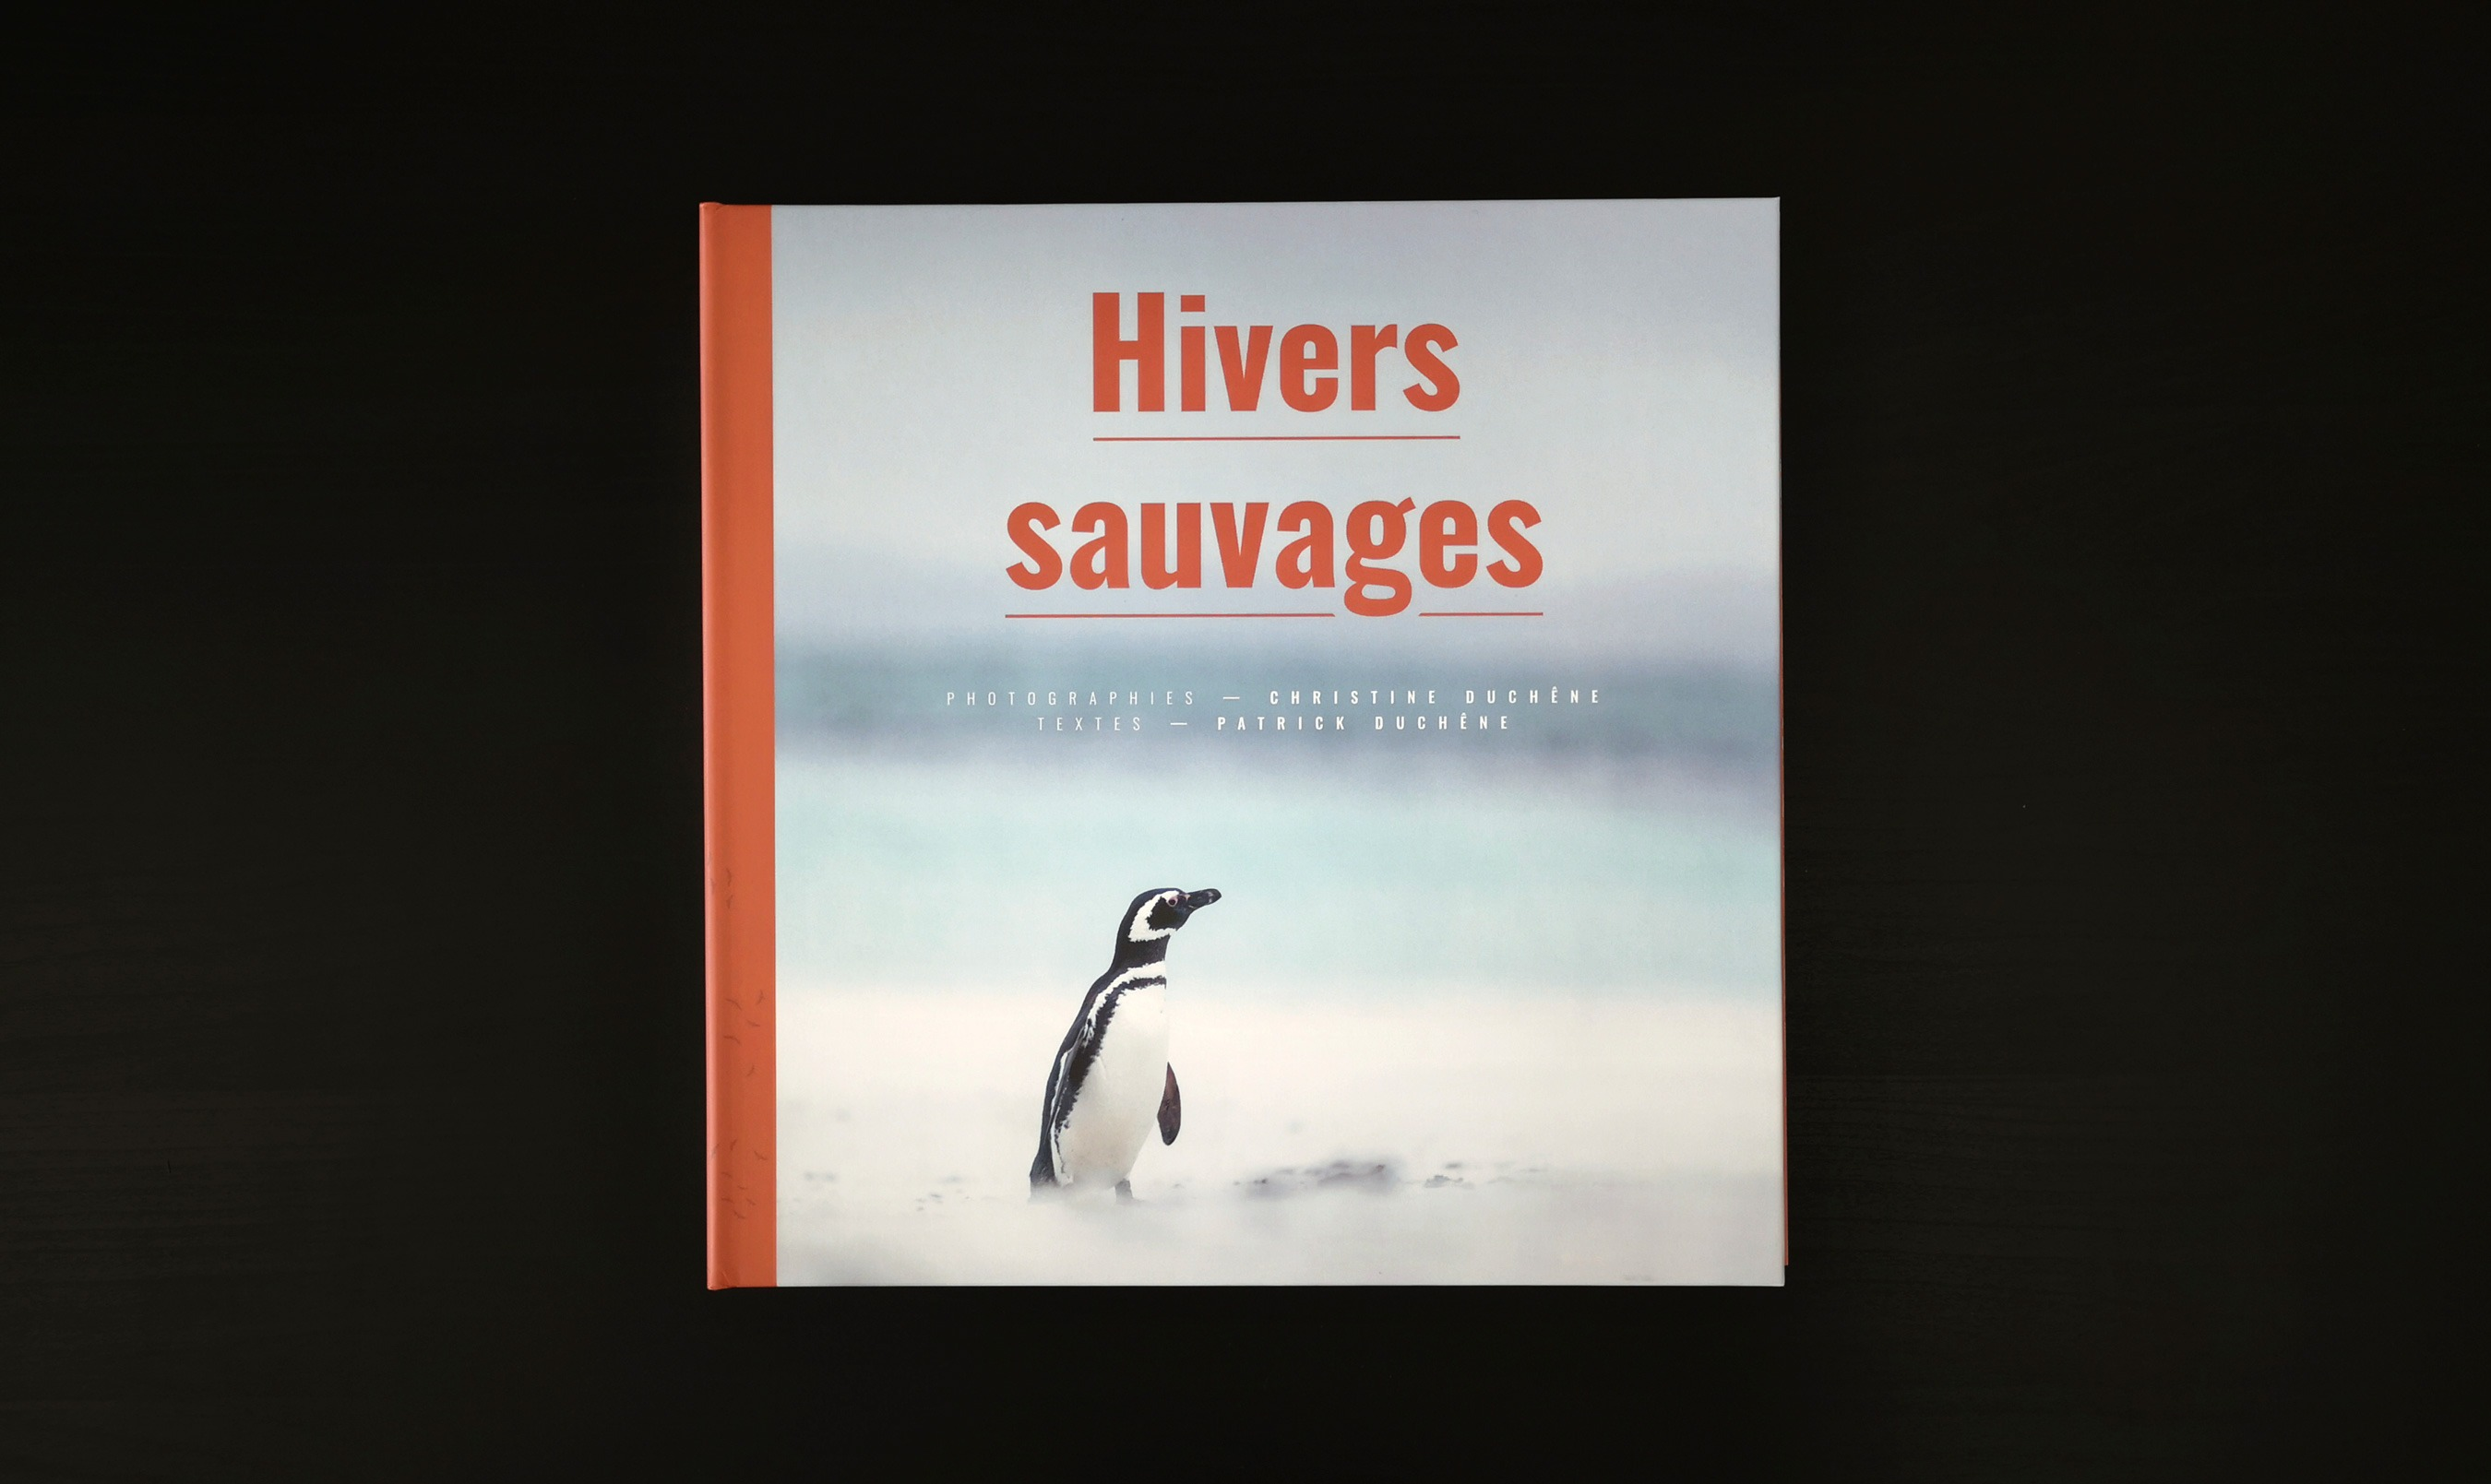 Hivers sauvages 3